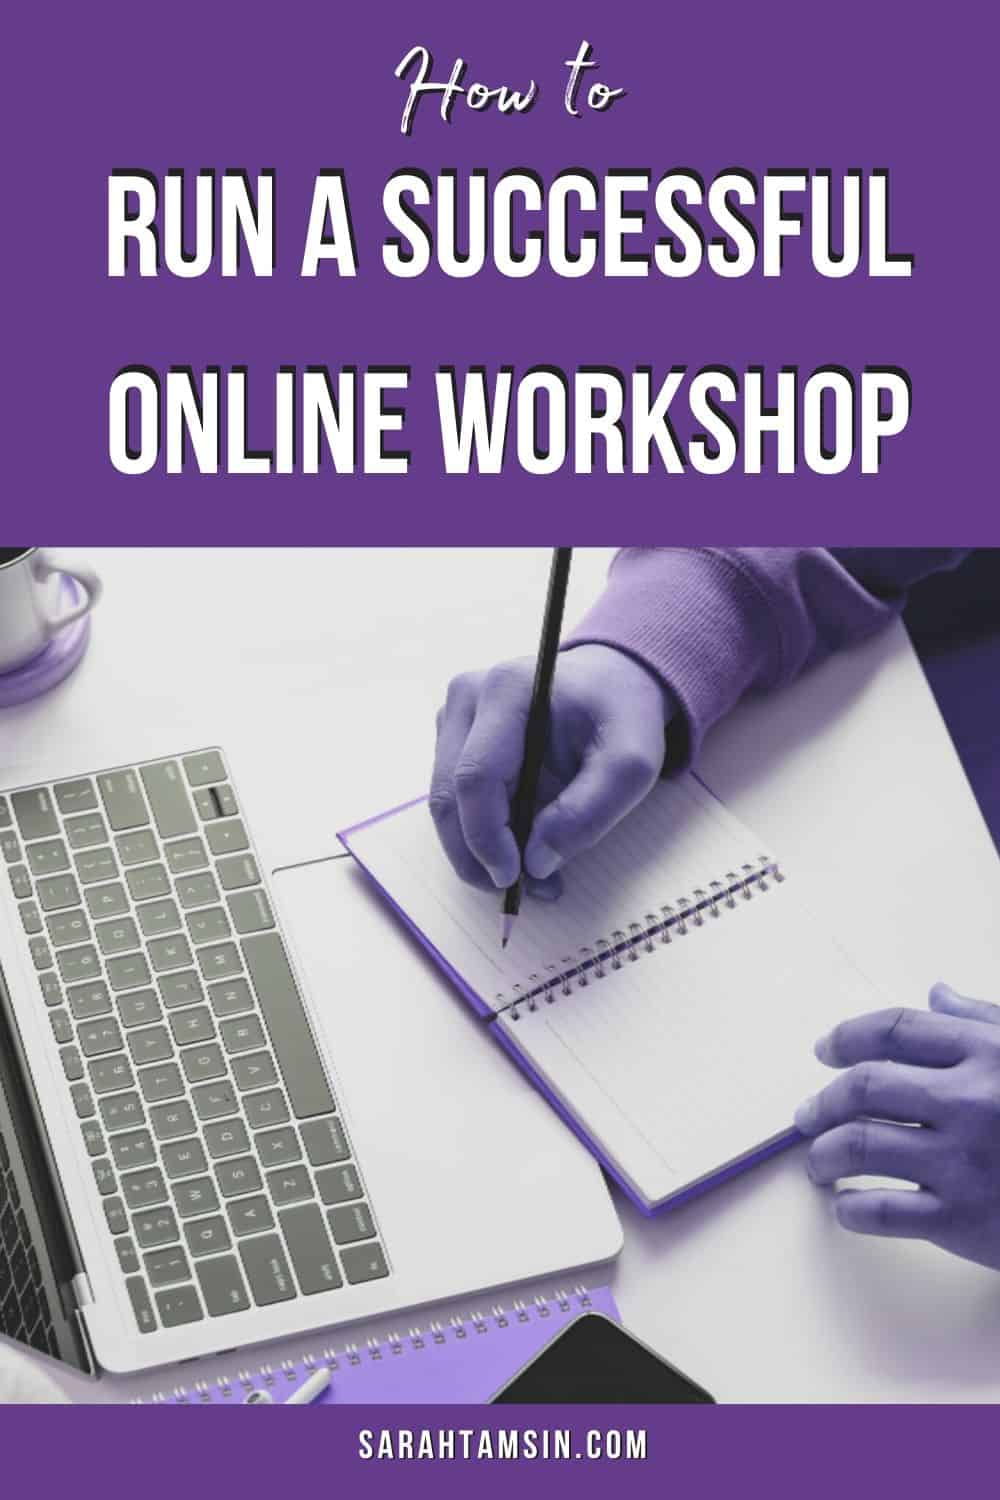 How to run a successful online workshop - webinar tips for trainers and presenters